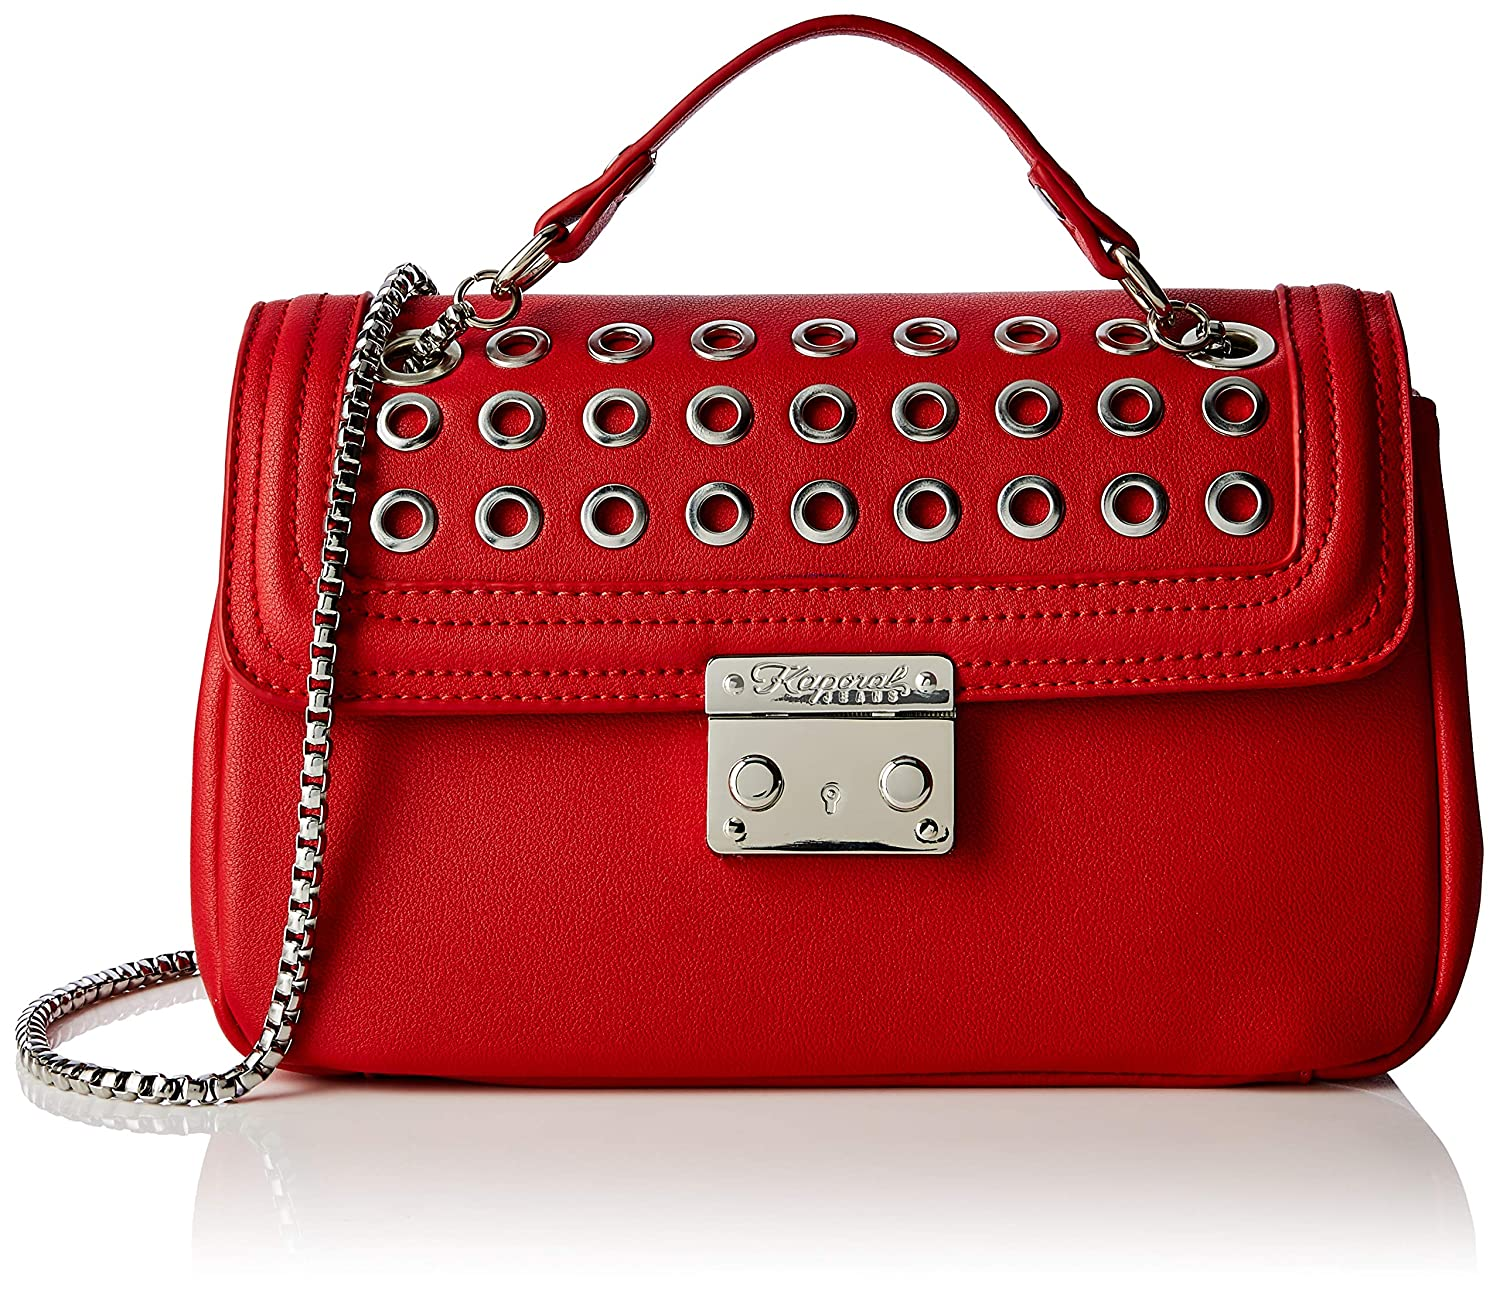 Red (Cherry) Kaporal Women's Wicia TopHandle Bag